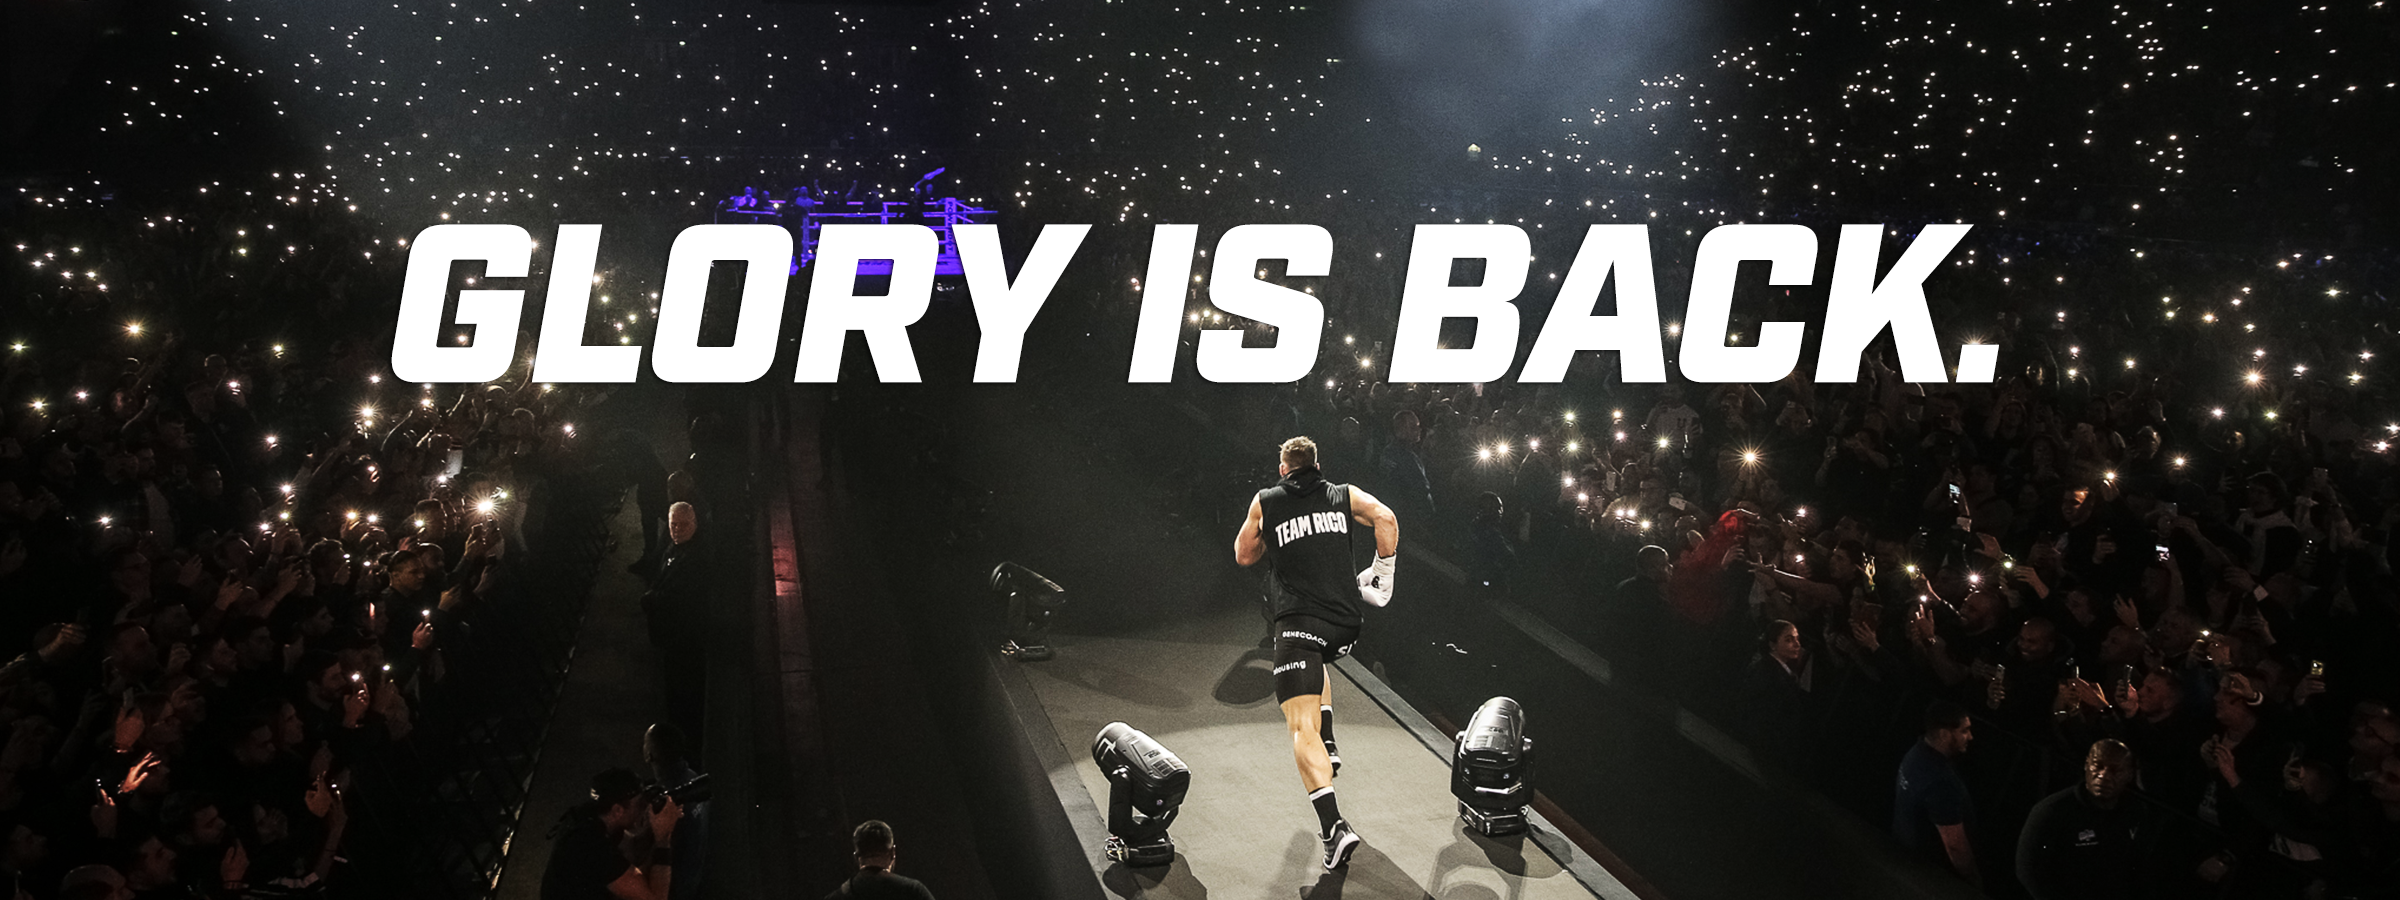 GLORY IS BACK HERO